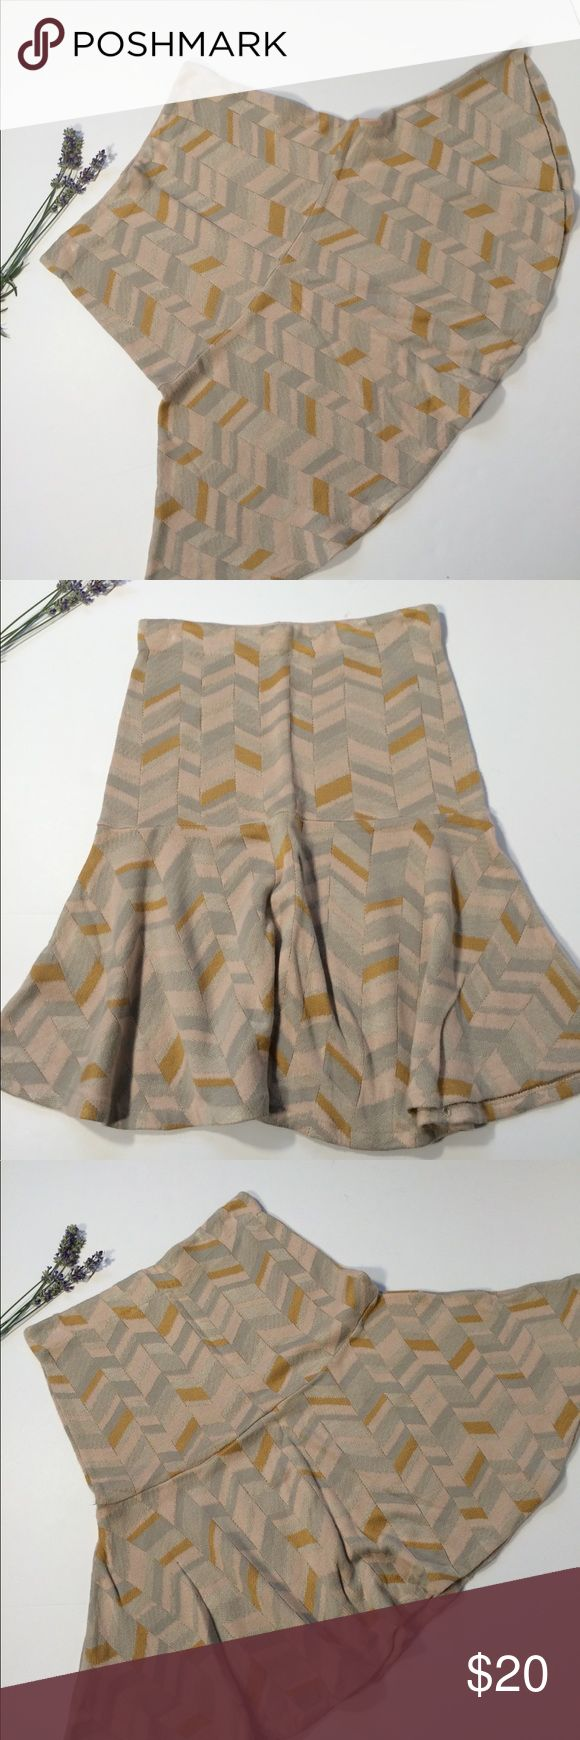 """Moth Small Knit Skirt Peach Gold Anthropology No holes , stains or tears. Pet and smoke free home. 13"""" across and 22"""" long. Anthropologie Skirts Mini"""